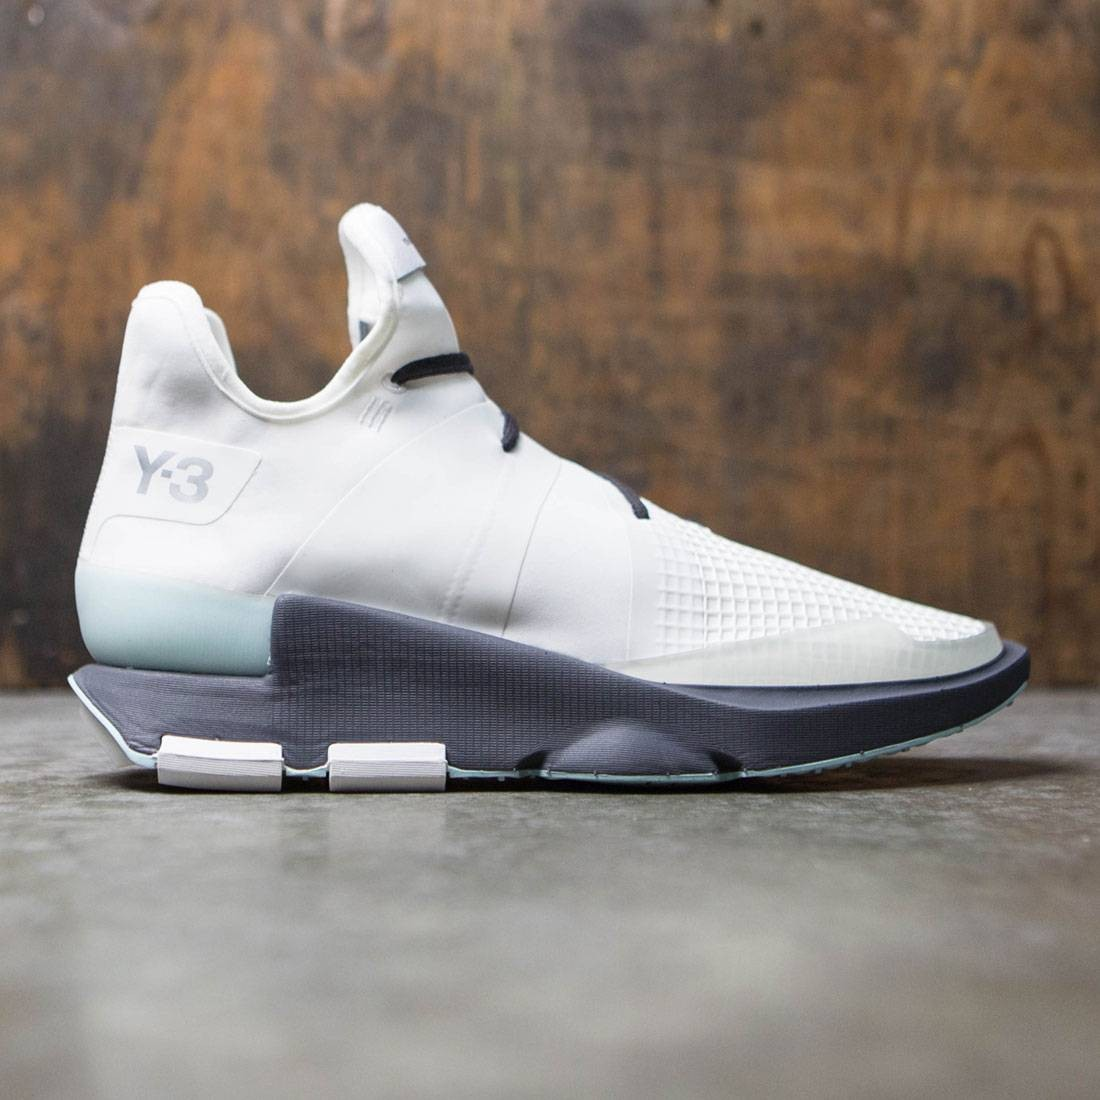 Adidas Y-3 Men Noci Low (white / crystal white / utility black)